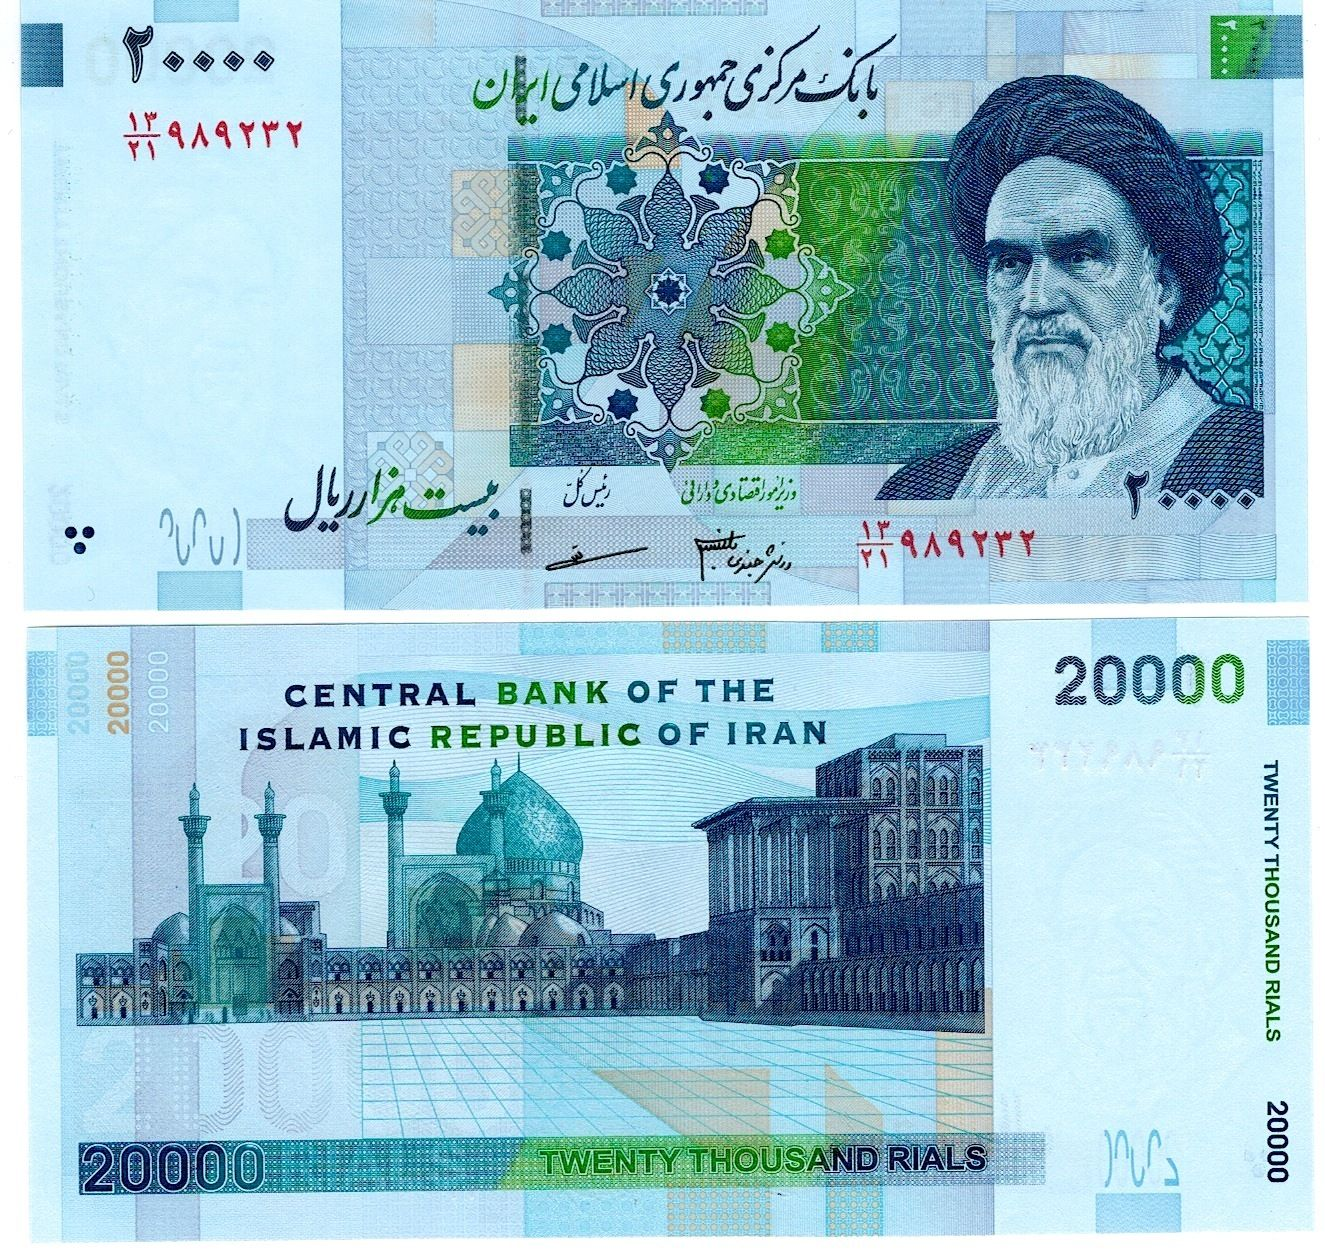 .Iranian Rial exchange rate from IRANIAN BANKS